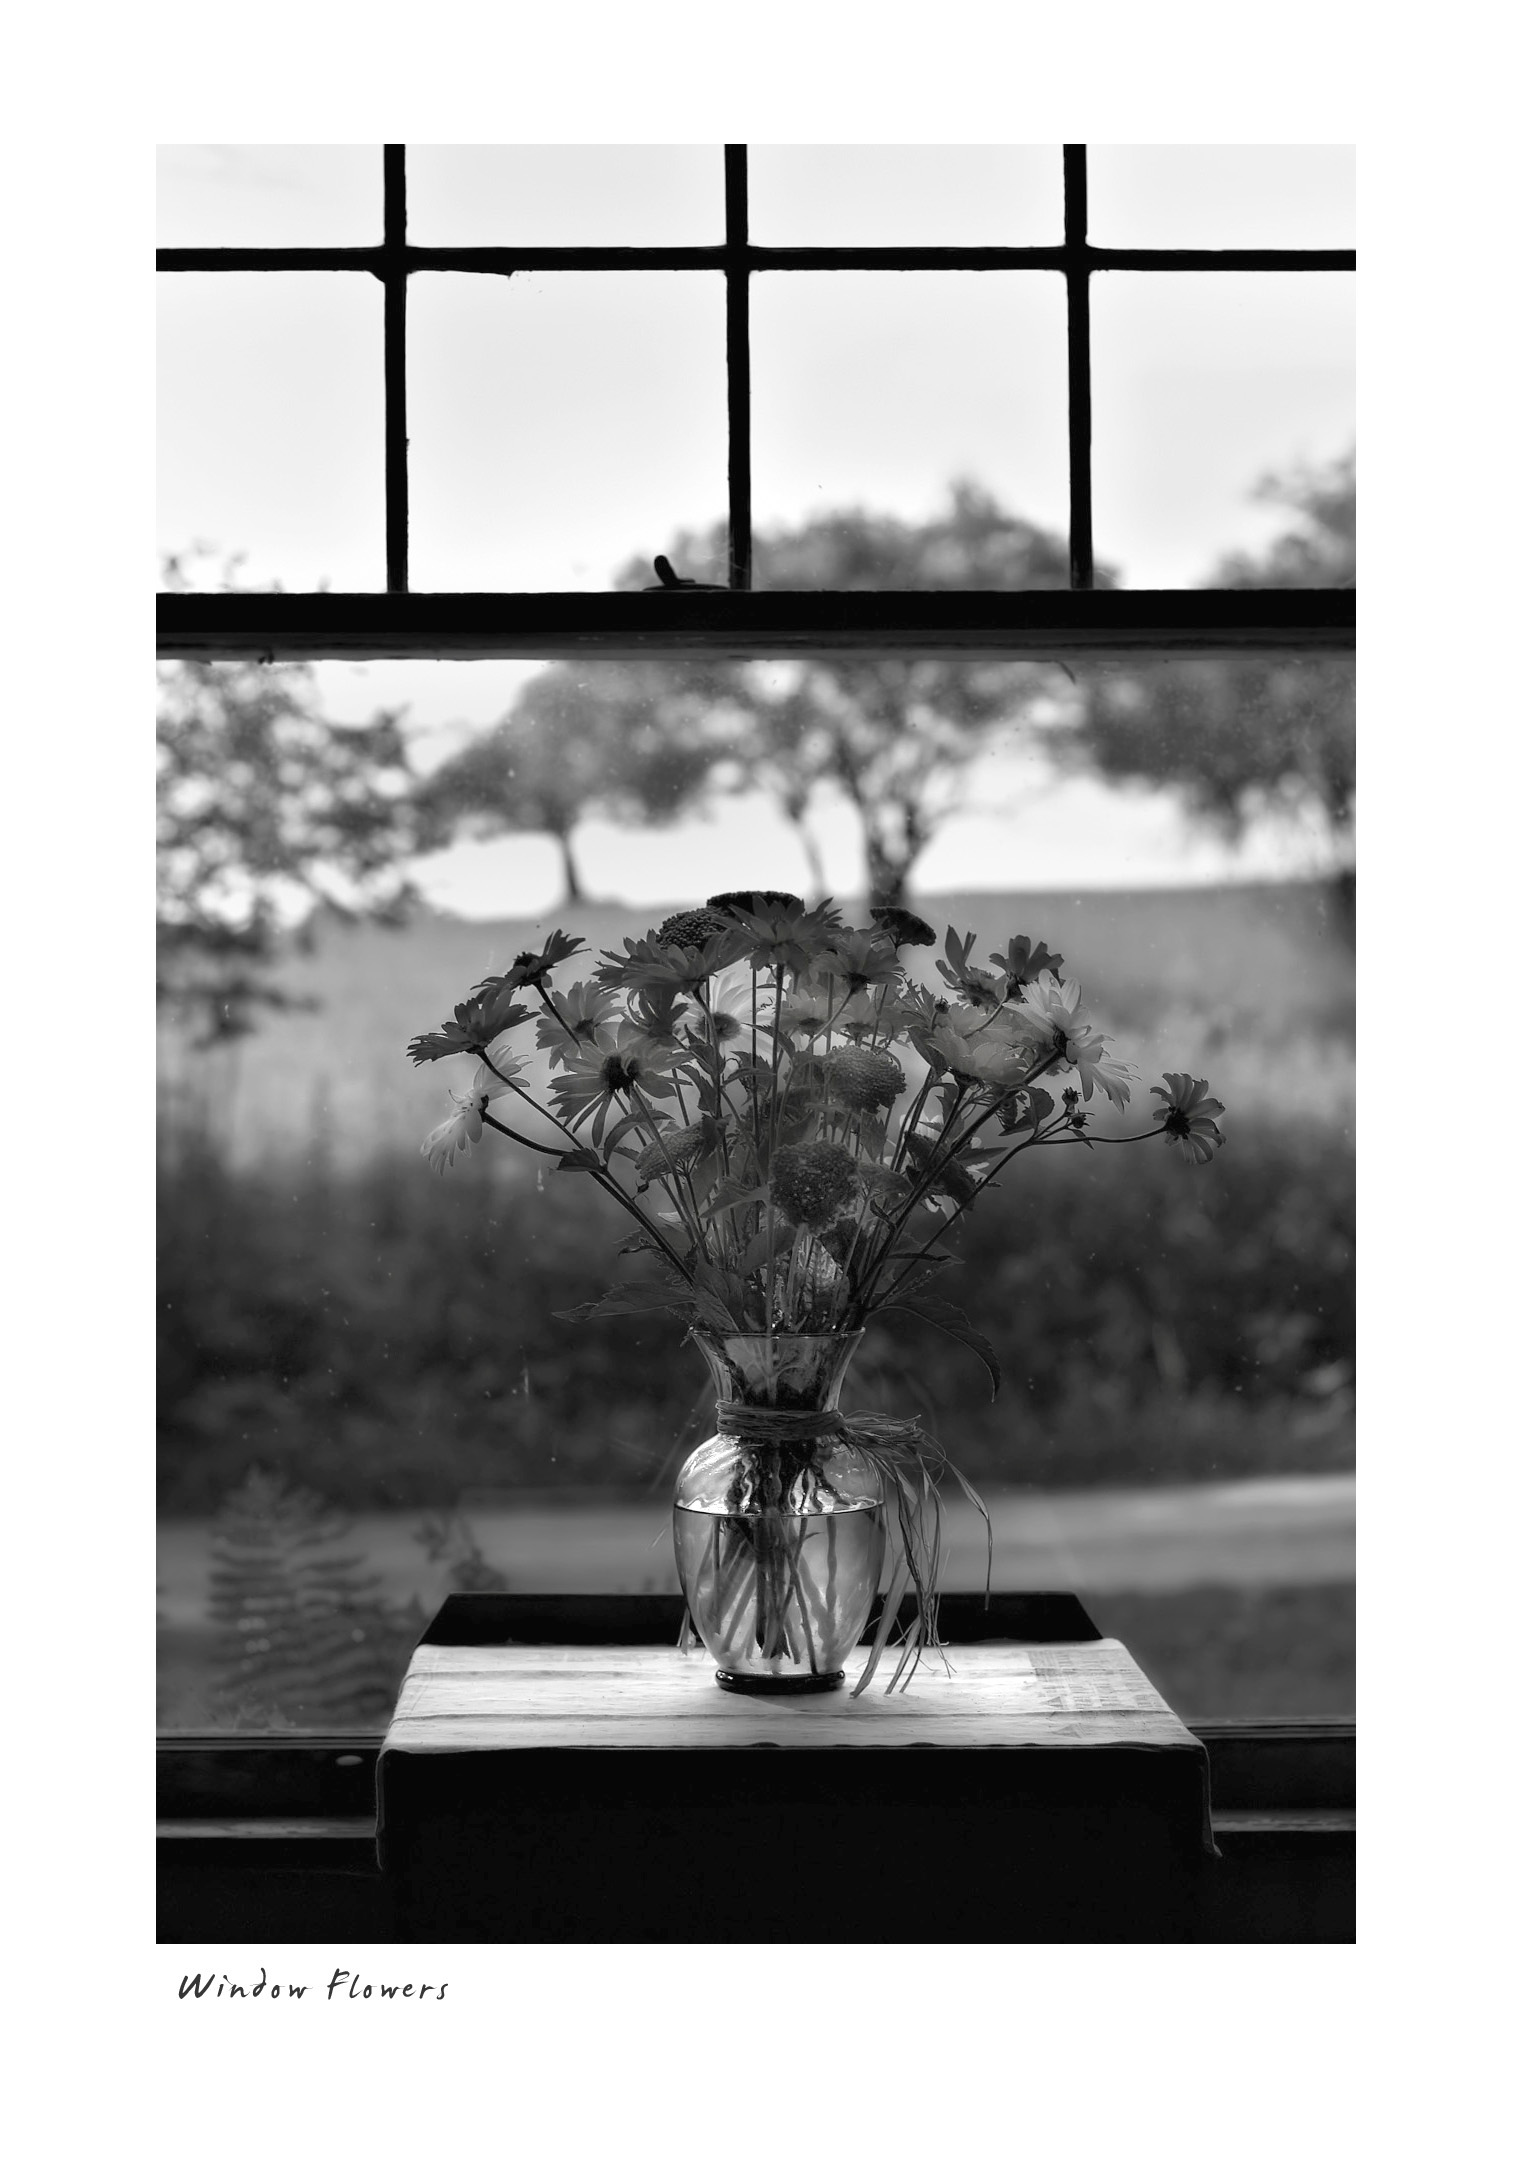 Window Flowers #1